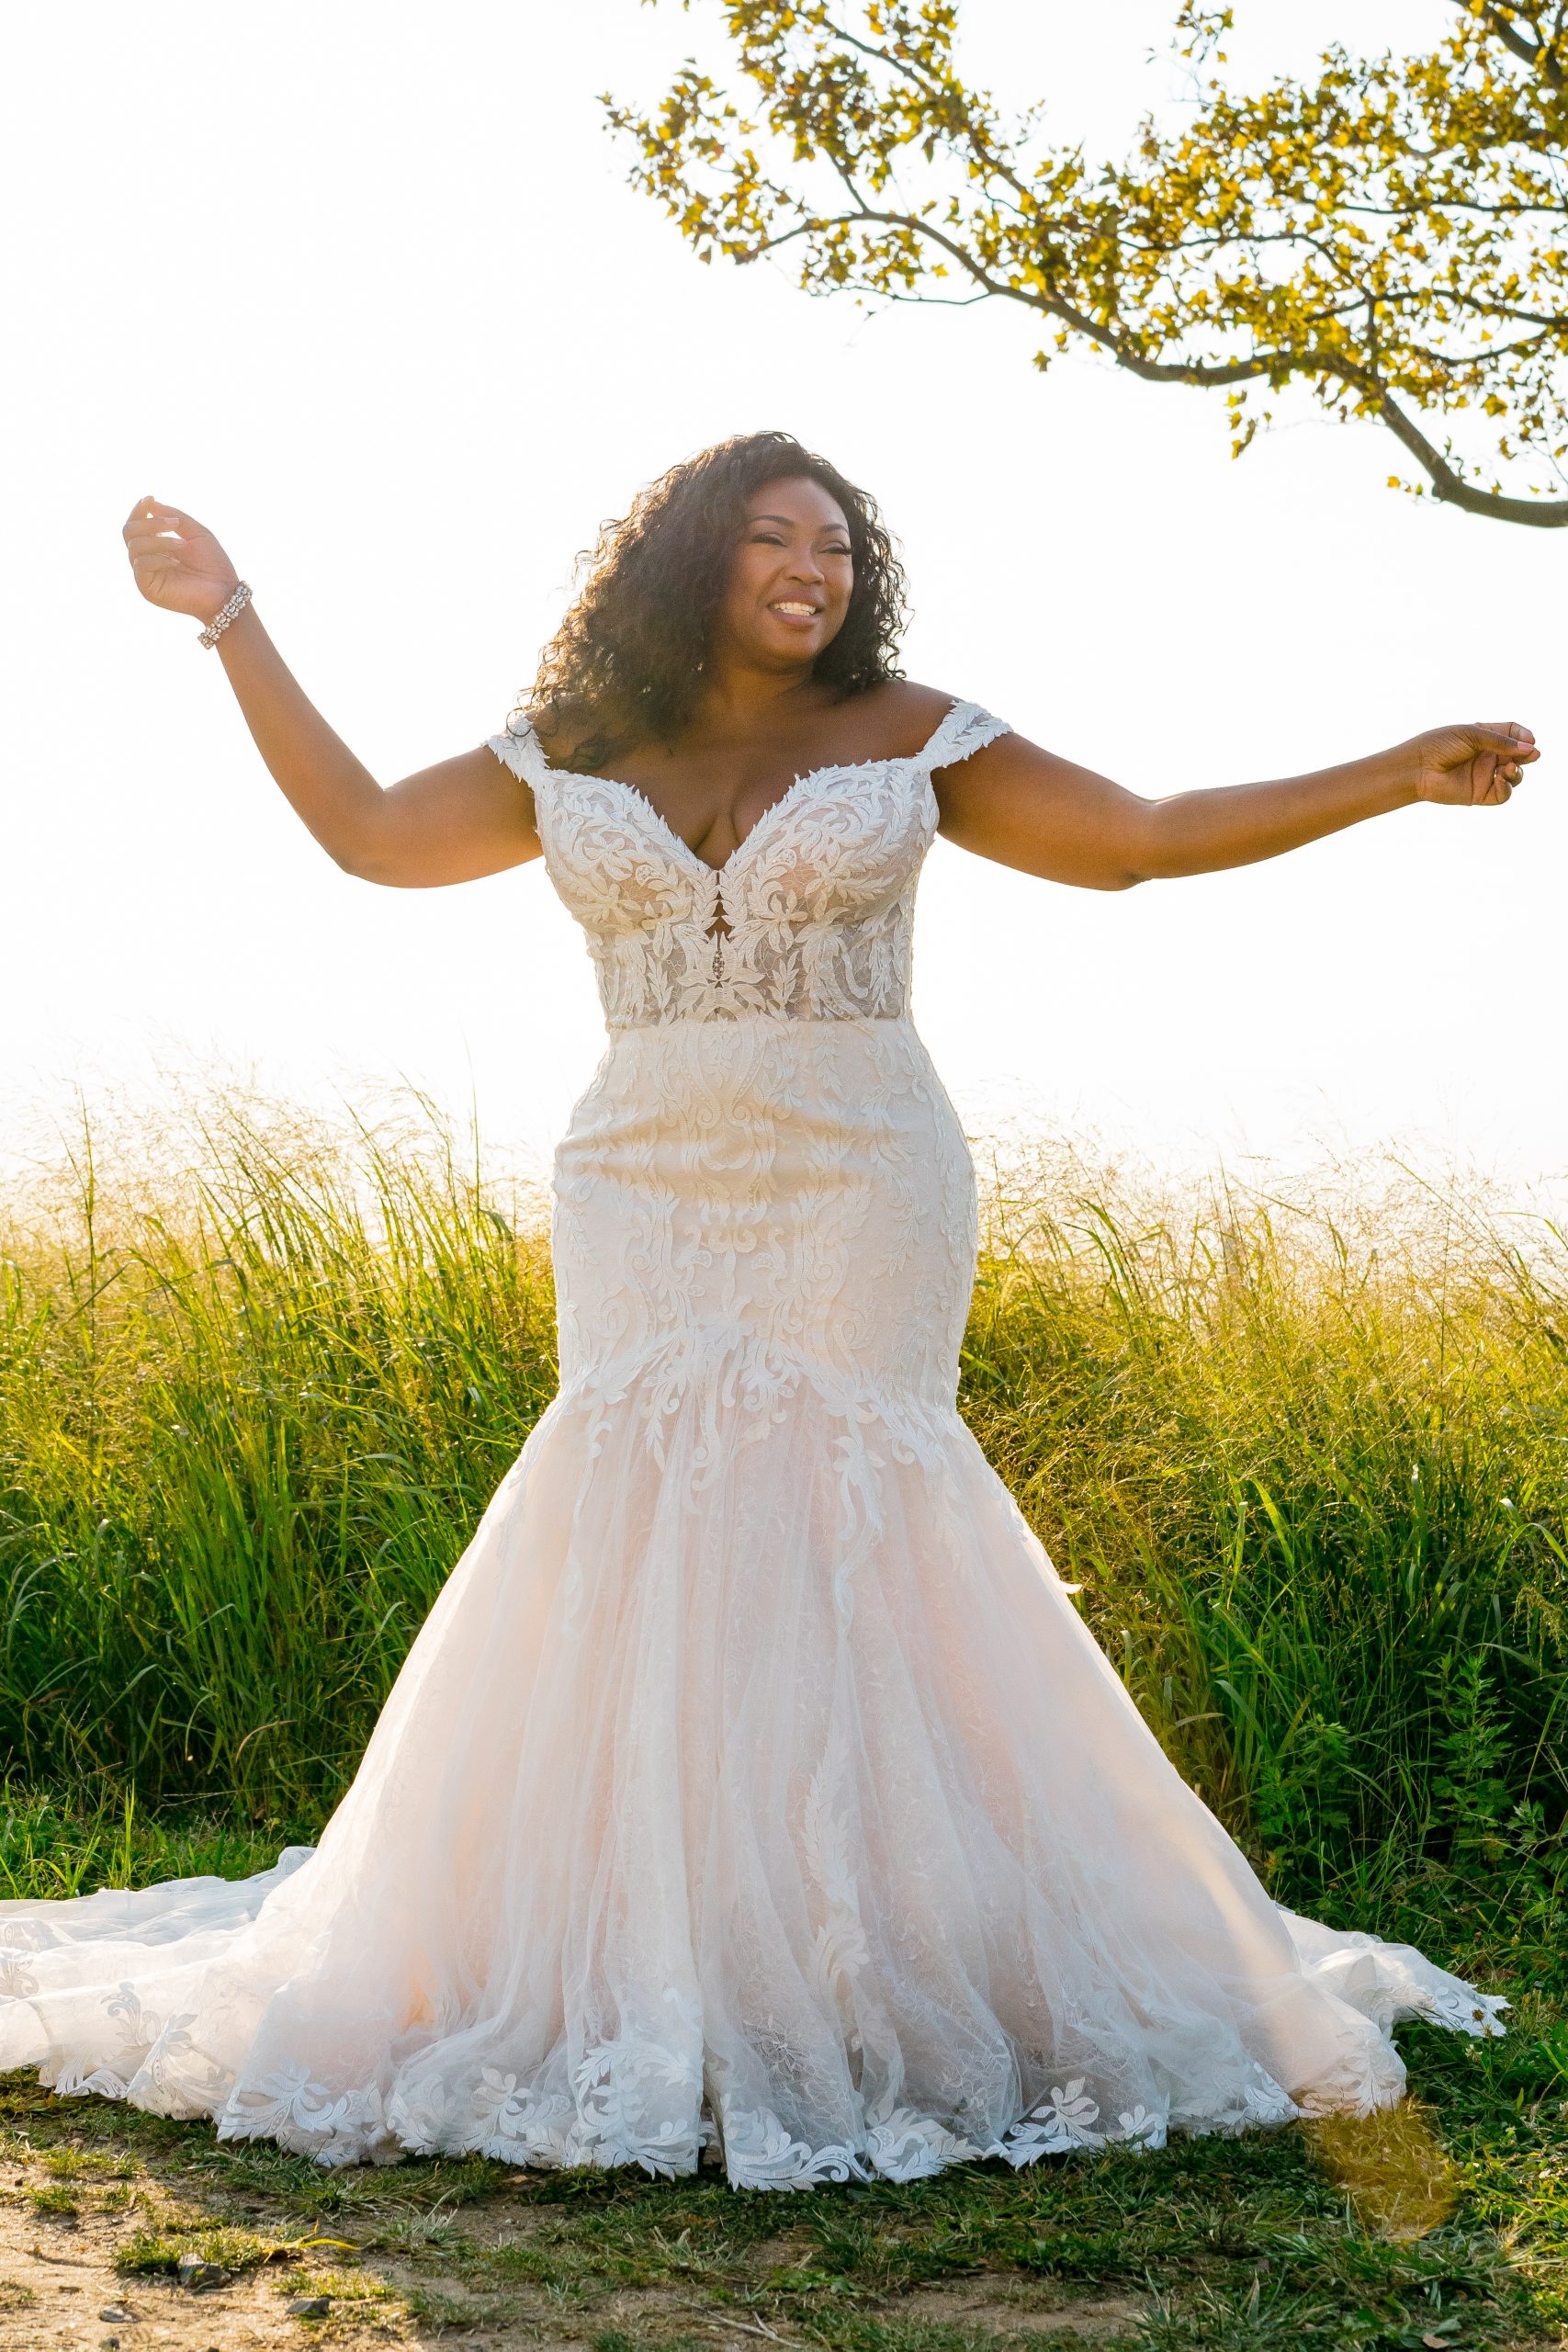 Black Plus Size Model Wearing Mermaid Wedding Dress Called Joss by Sottero and Midgley